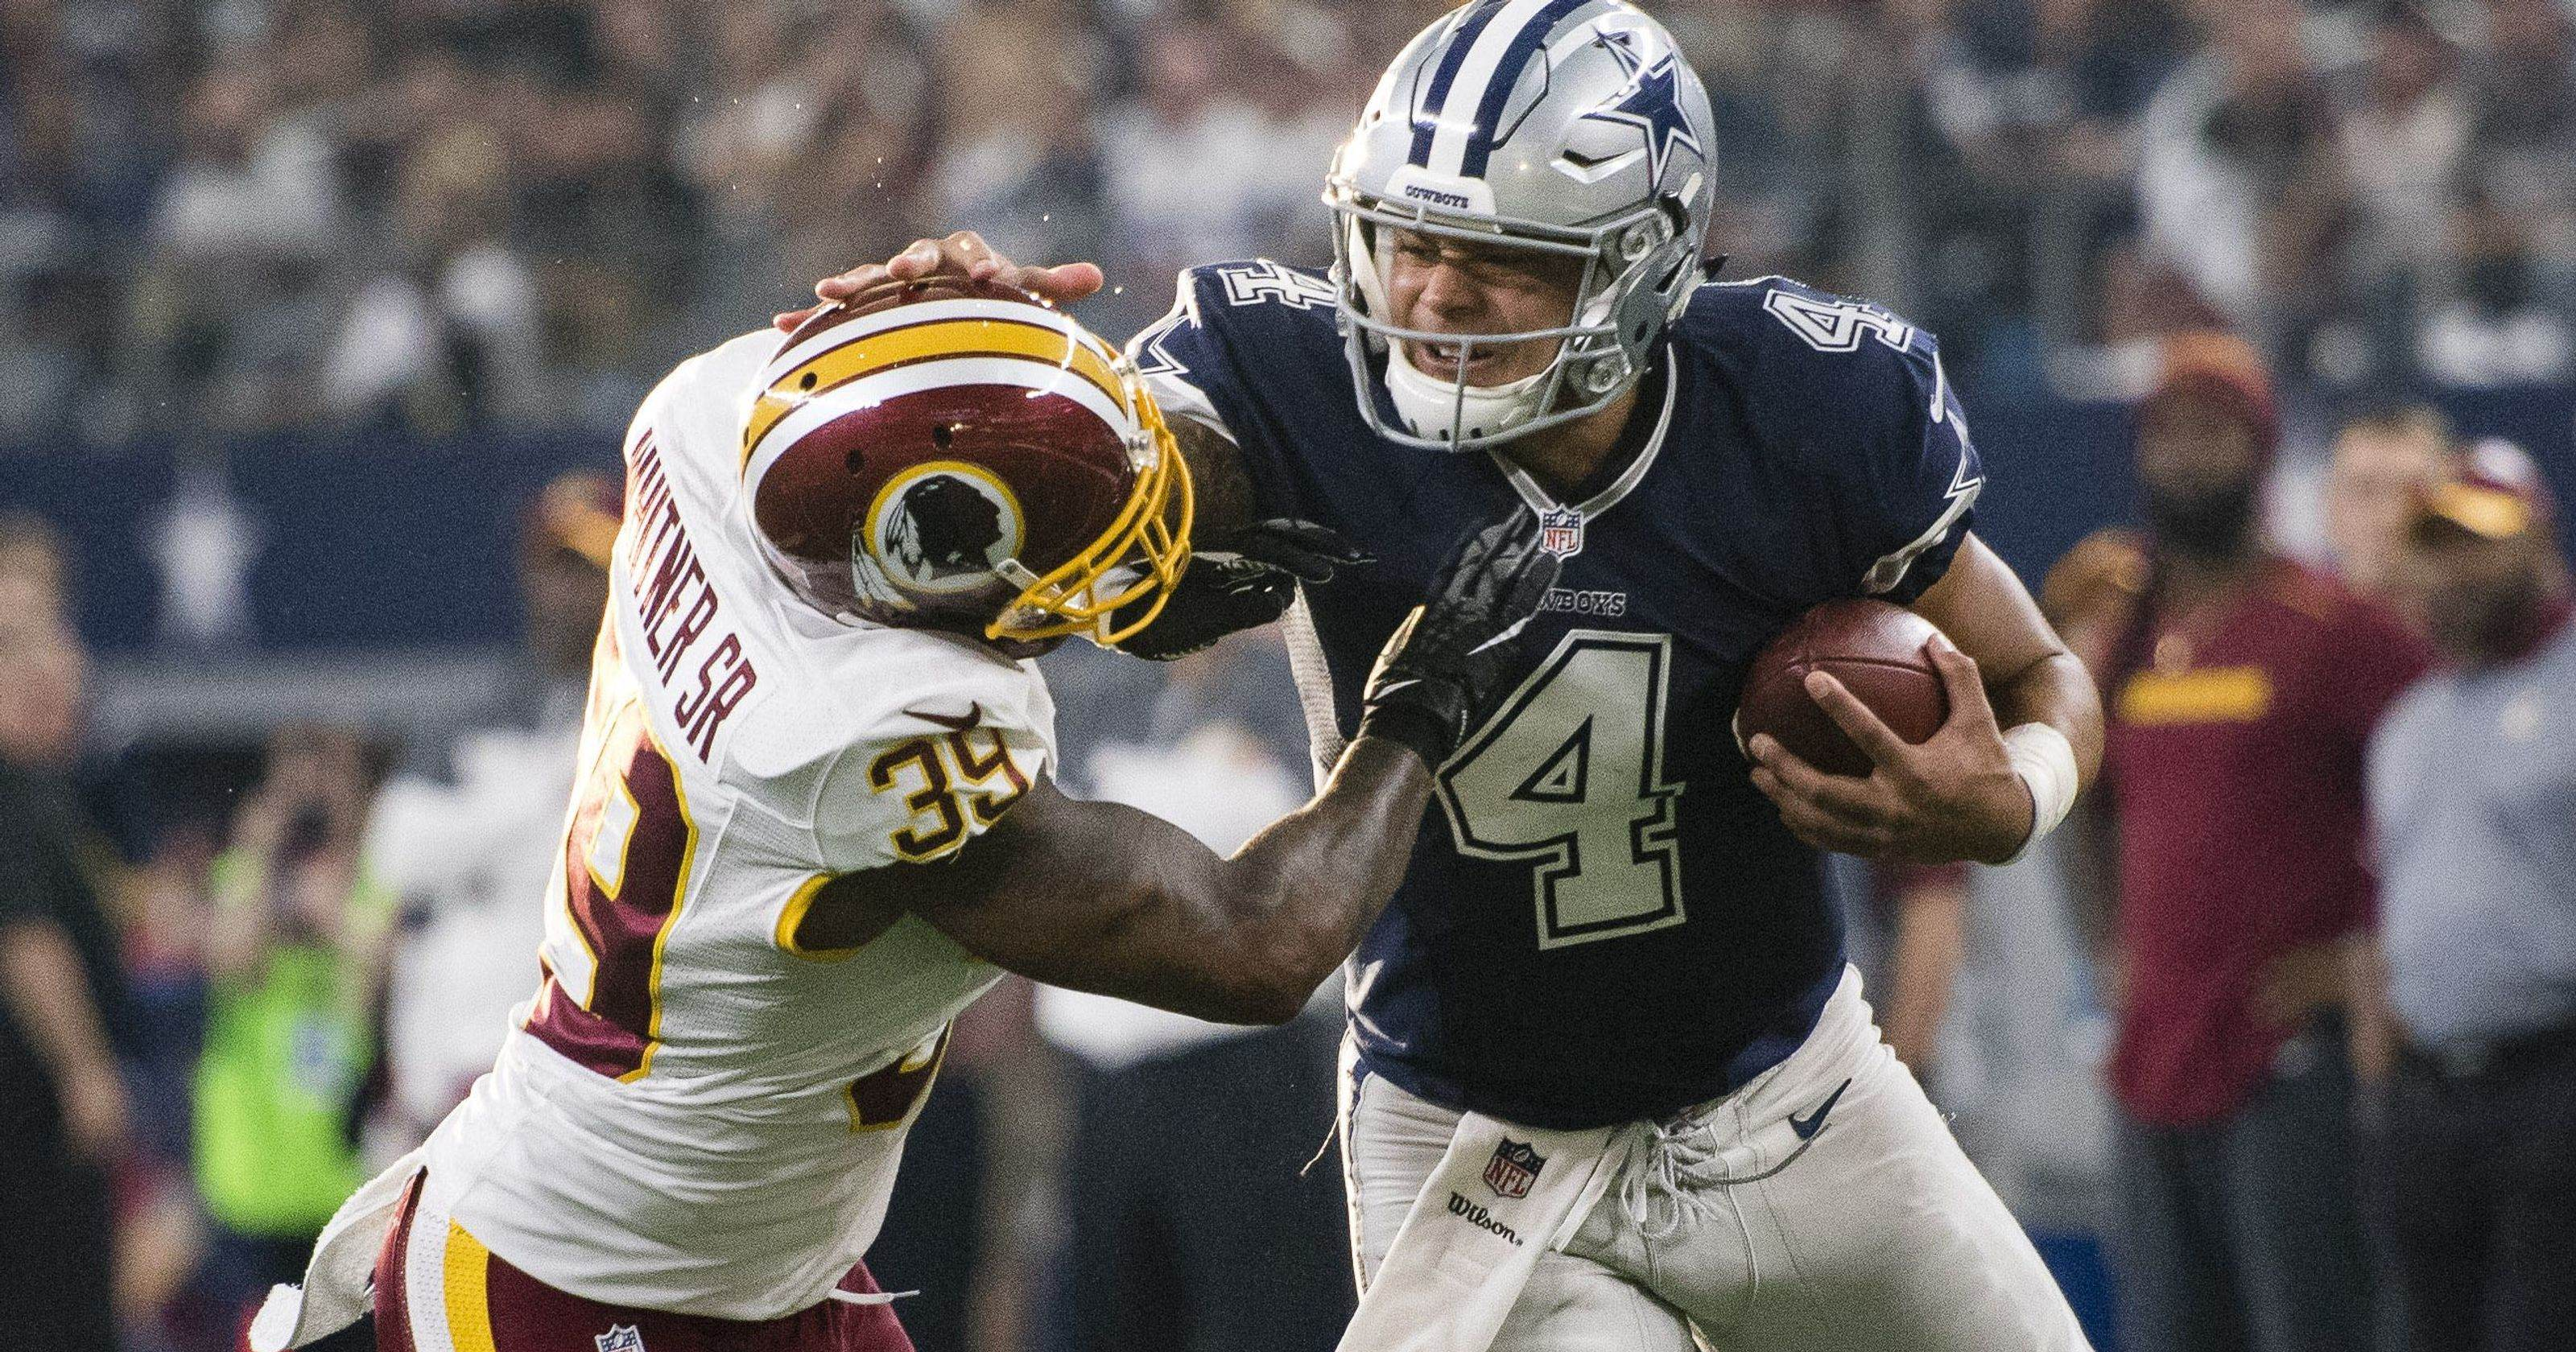 Redskins Halftime Takeaways: Defense reigns supreme in first half